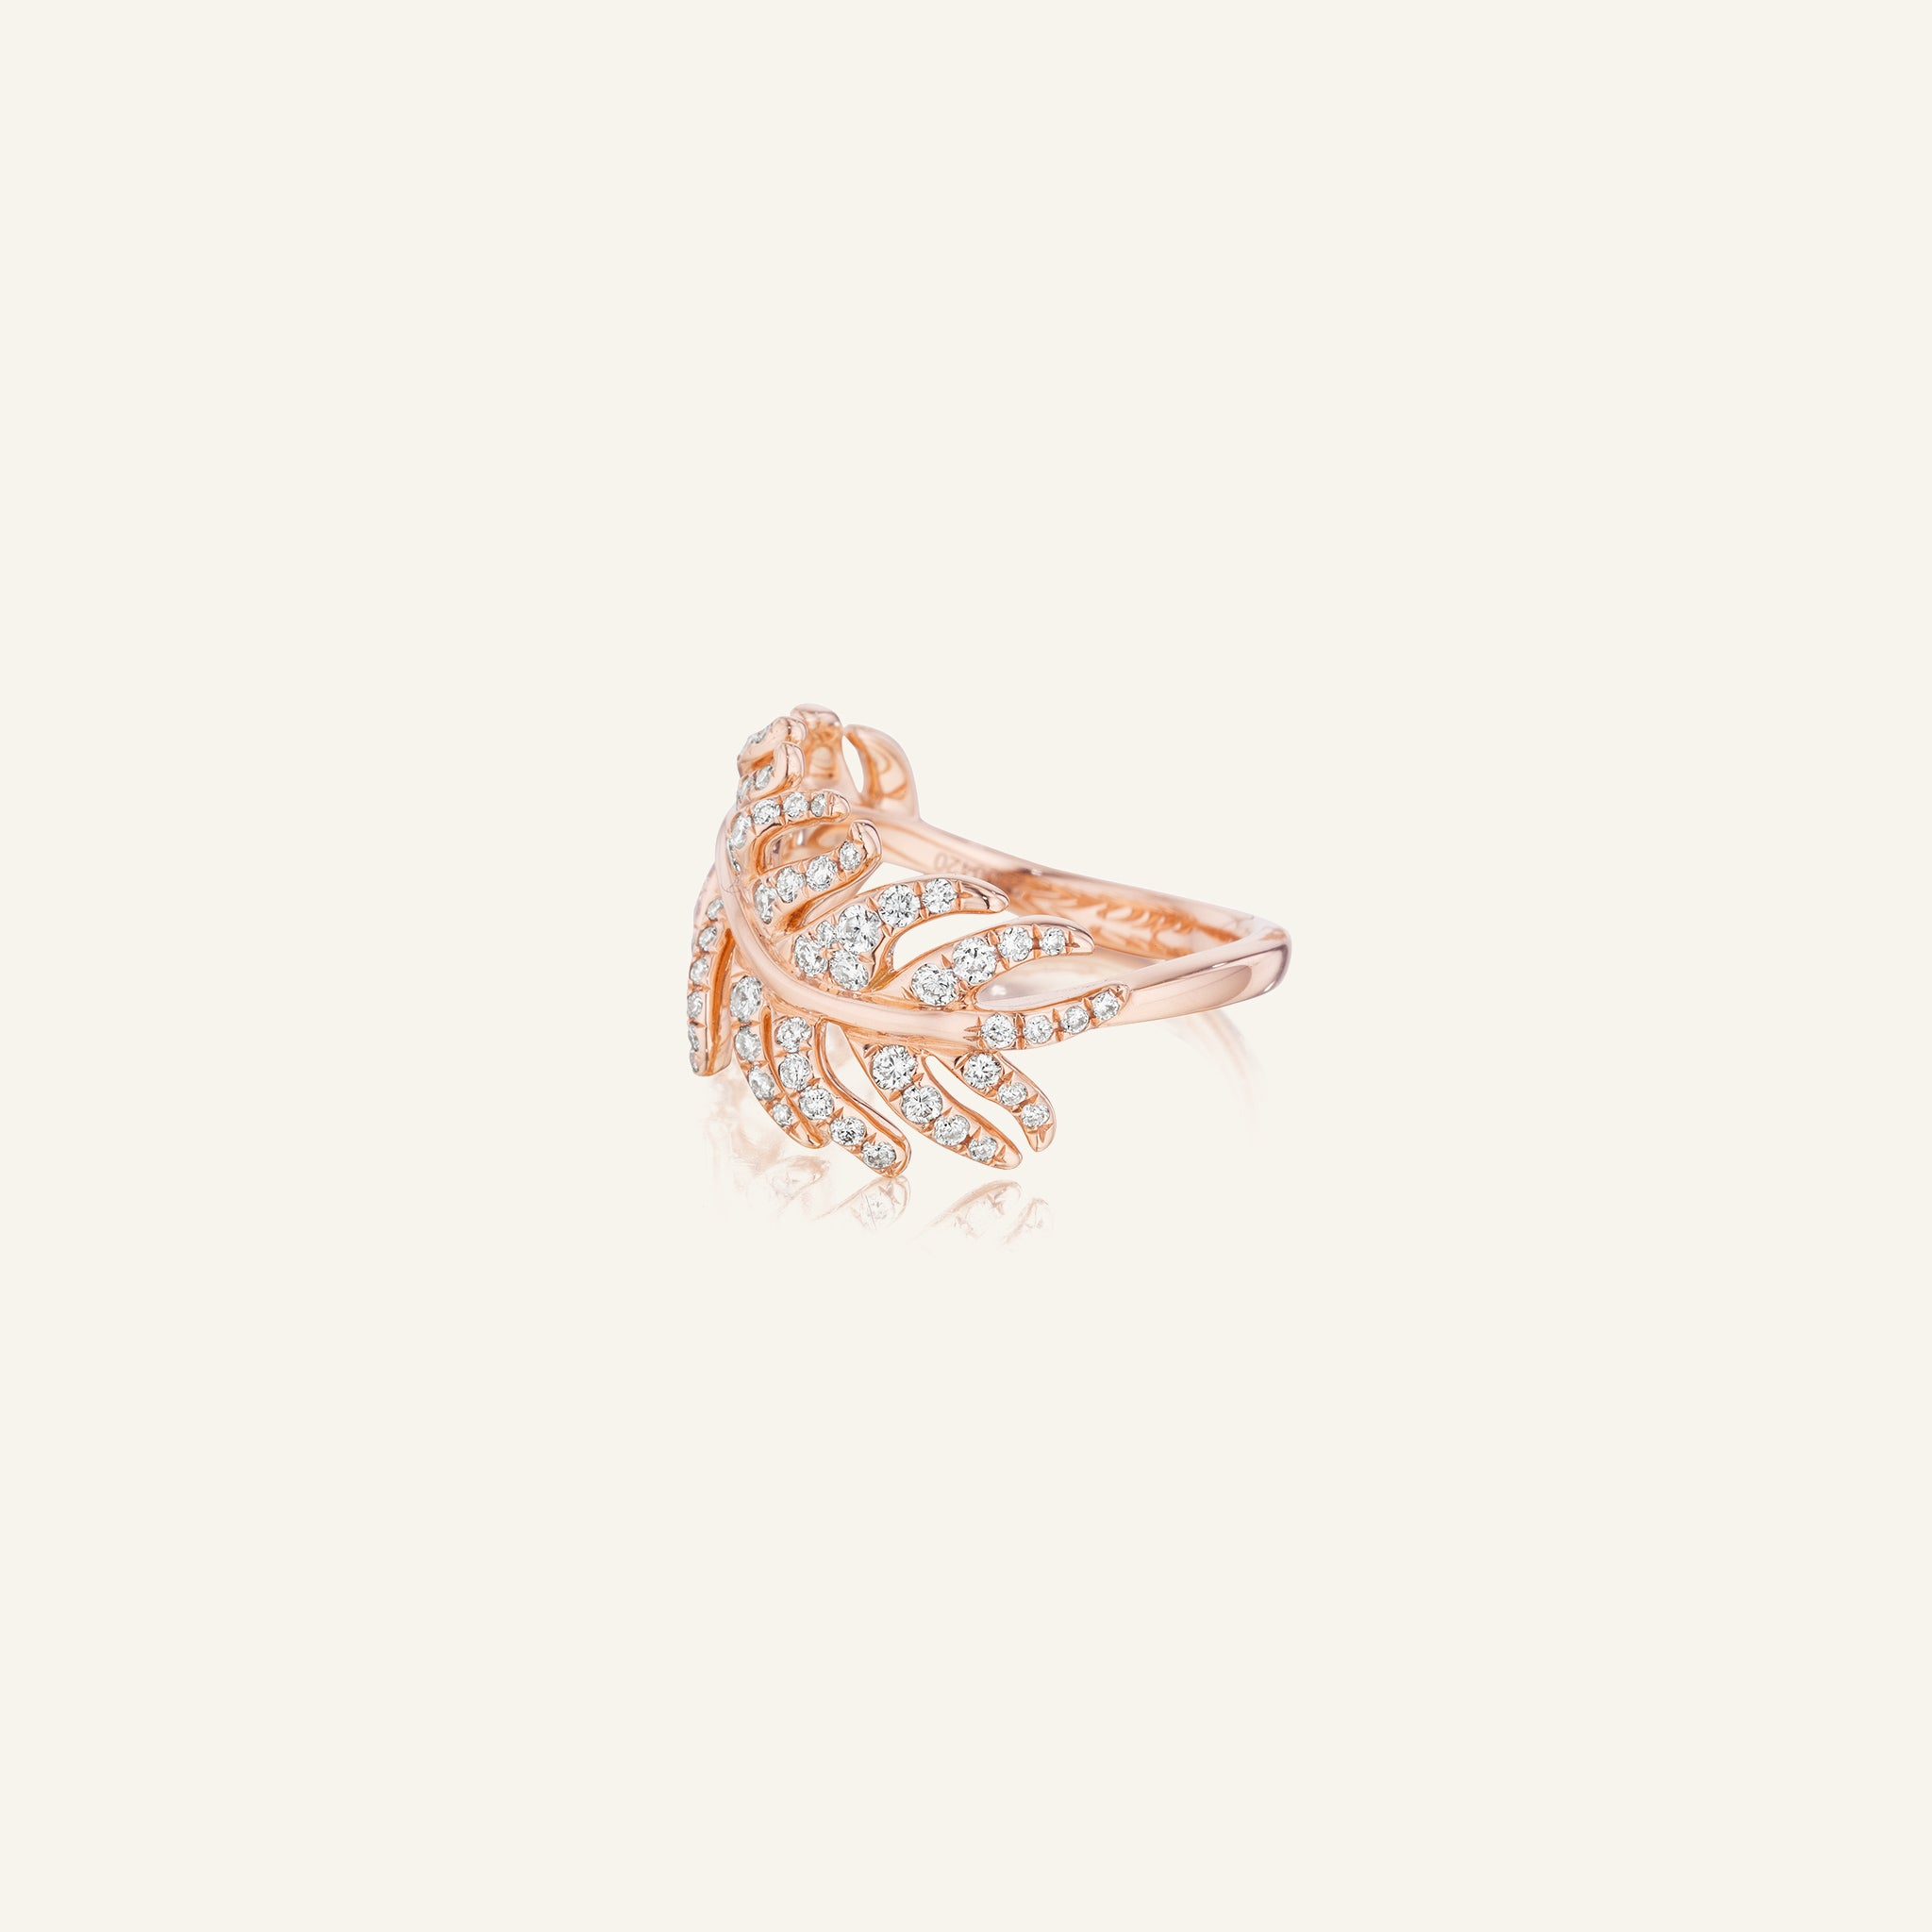 Mimi-So-Phoenix-Feather-Stackable-Diamond-Rings